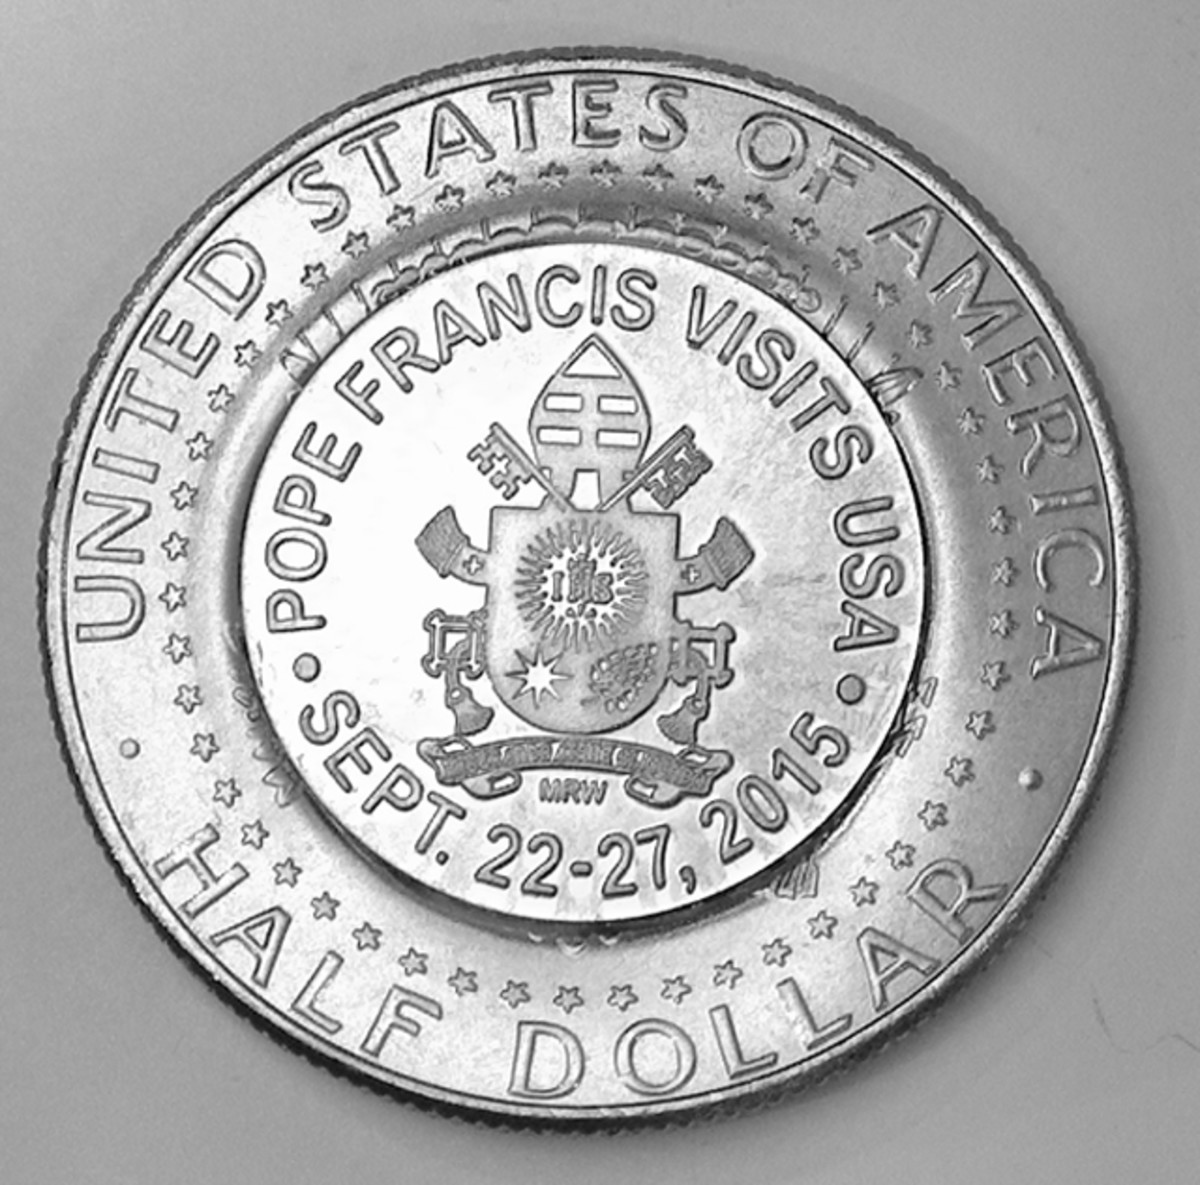 Mel Wacks' counterstamped half dollars commemorate Pope Francis' first visit to the U.S. in September.